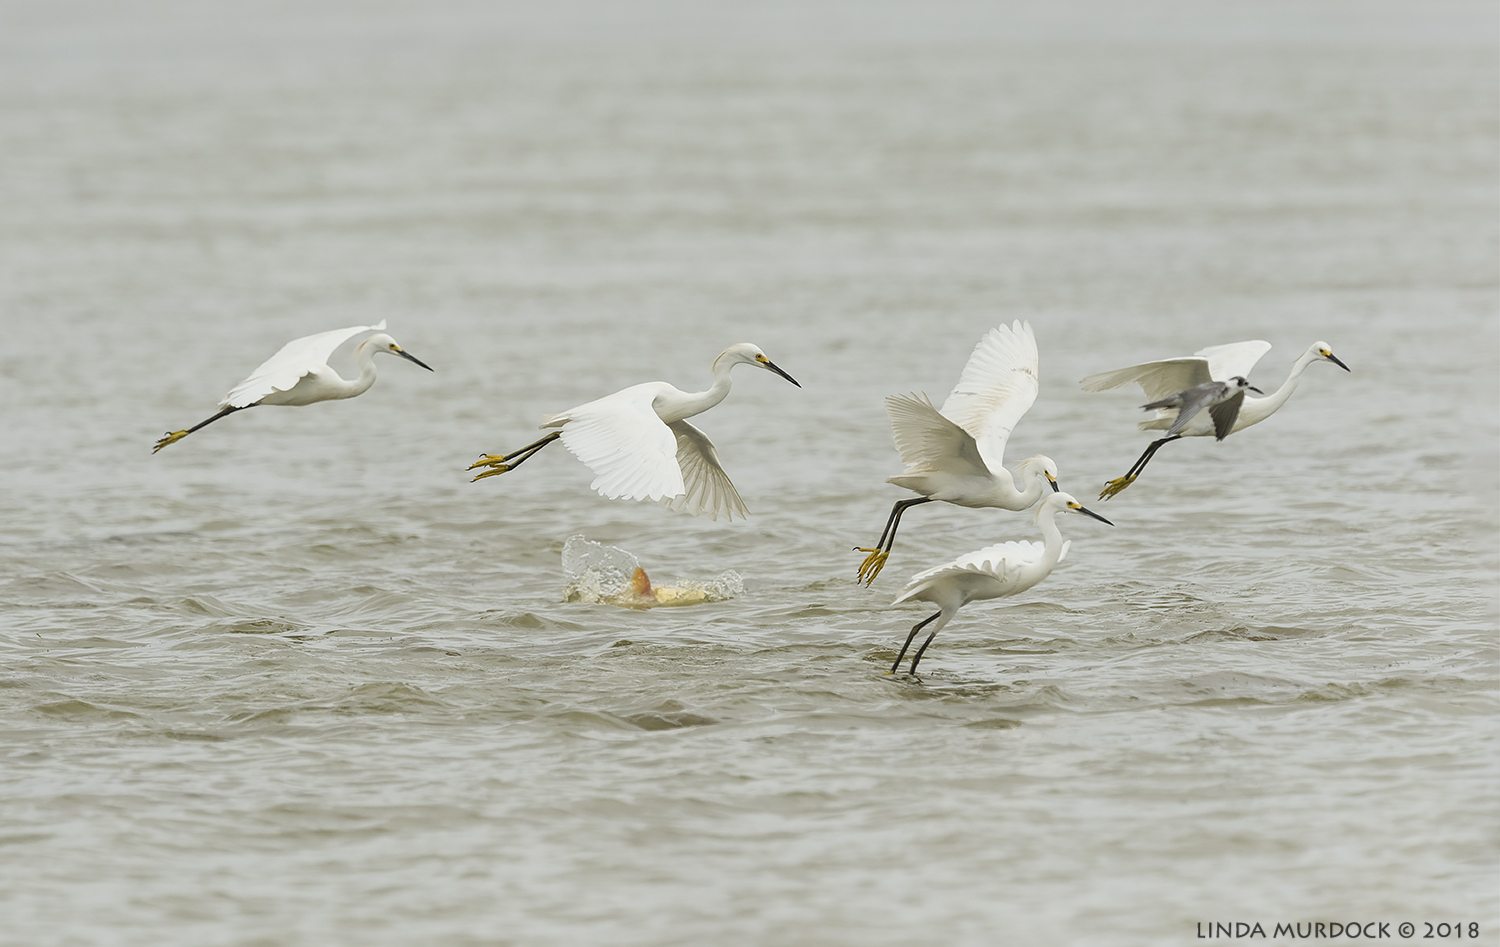 Snowy Egrets collectively fishing... Nikon D810 with NIKKOR 500mm f/4E VR + Nikon 1.4x TC ~ 1/2000 sec f/8.0 ISO 640; braced in truck window